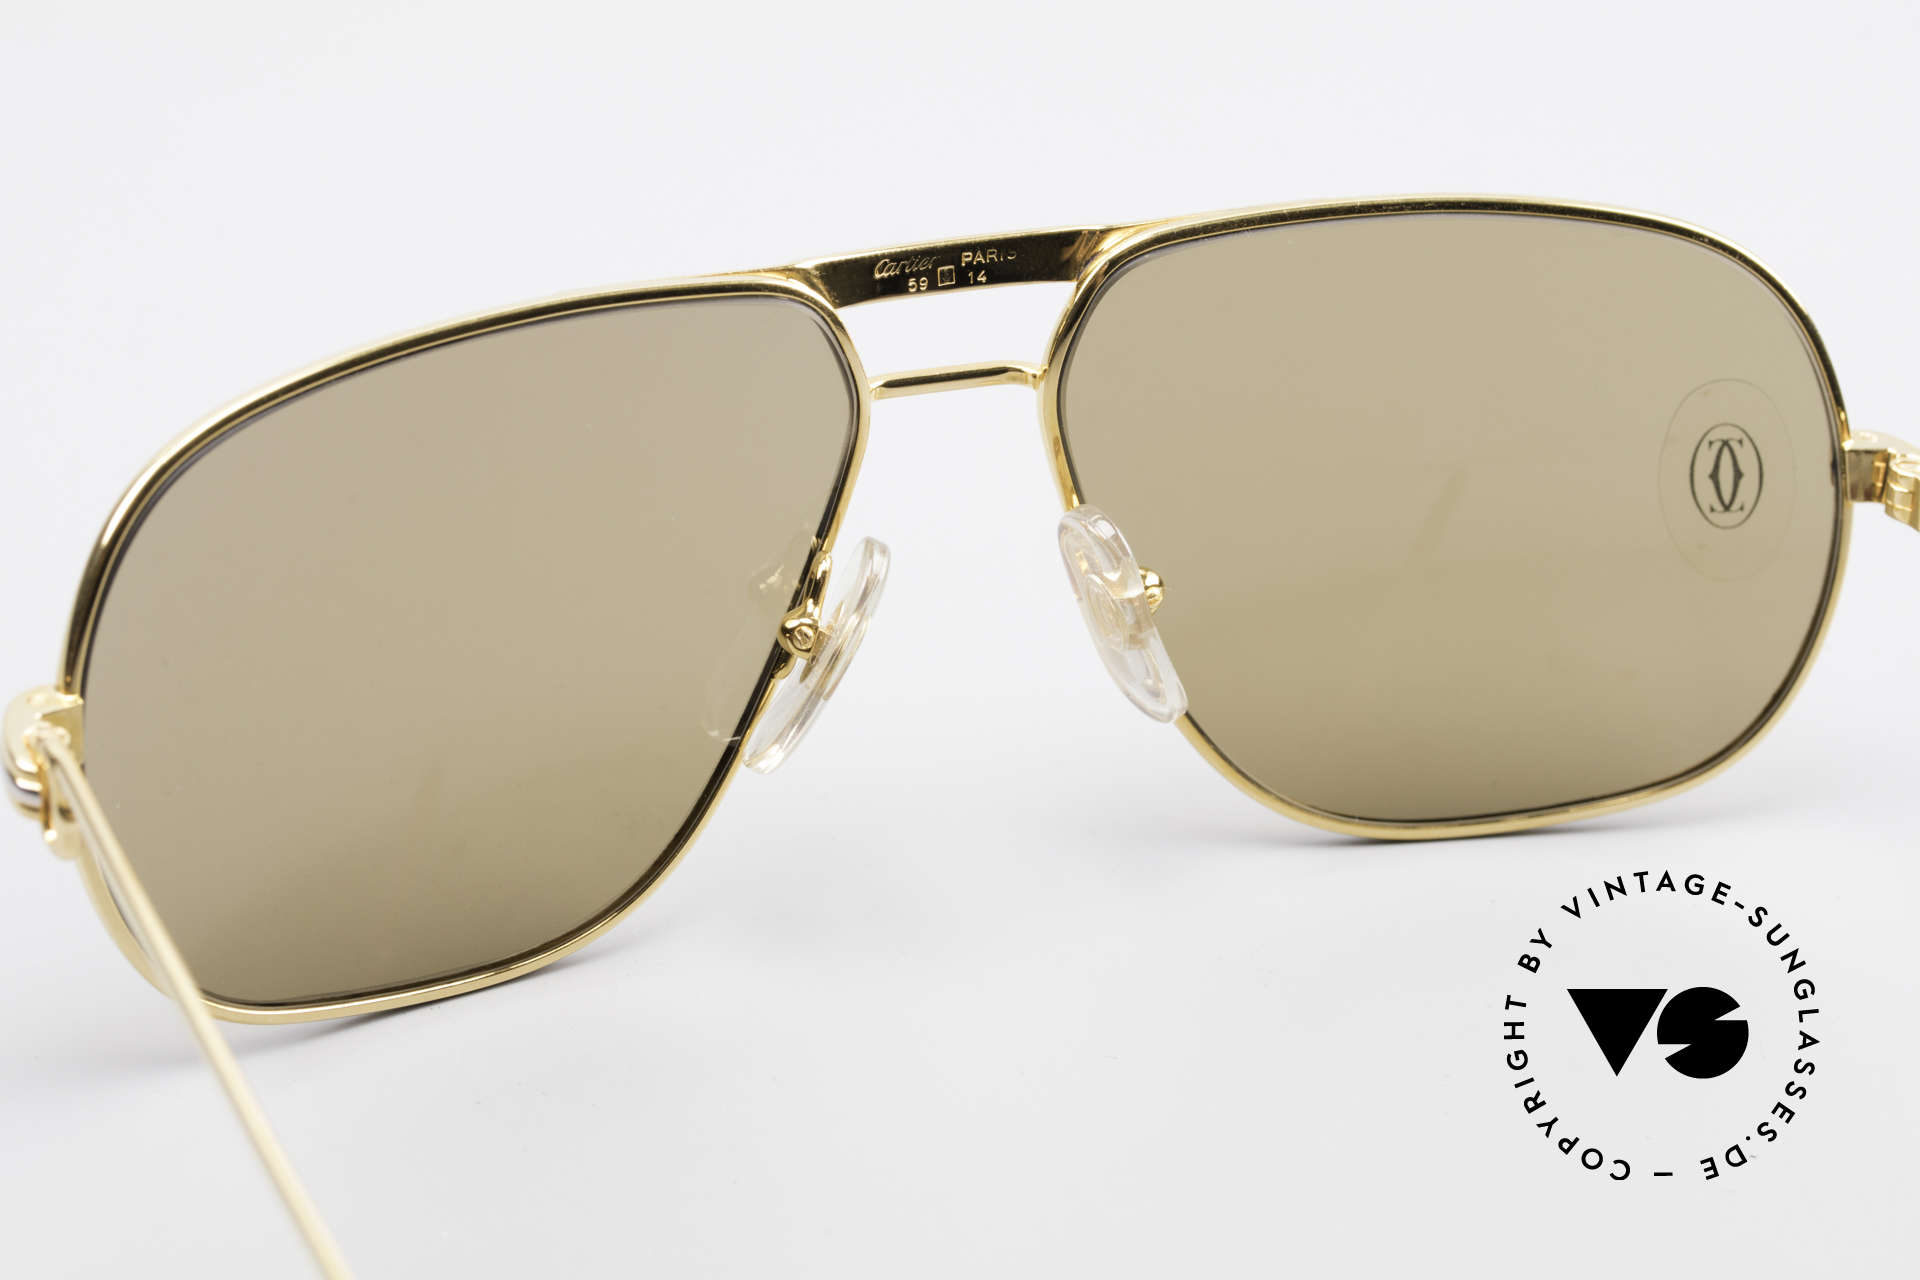 Cartier Tank - M Mystic Cartier Sun Lenses, you must BREATH on the lenses to make the logo VISIBLE, Made for Men